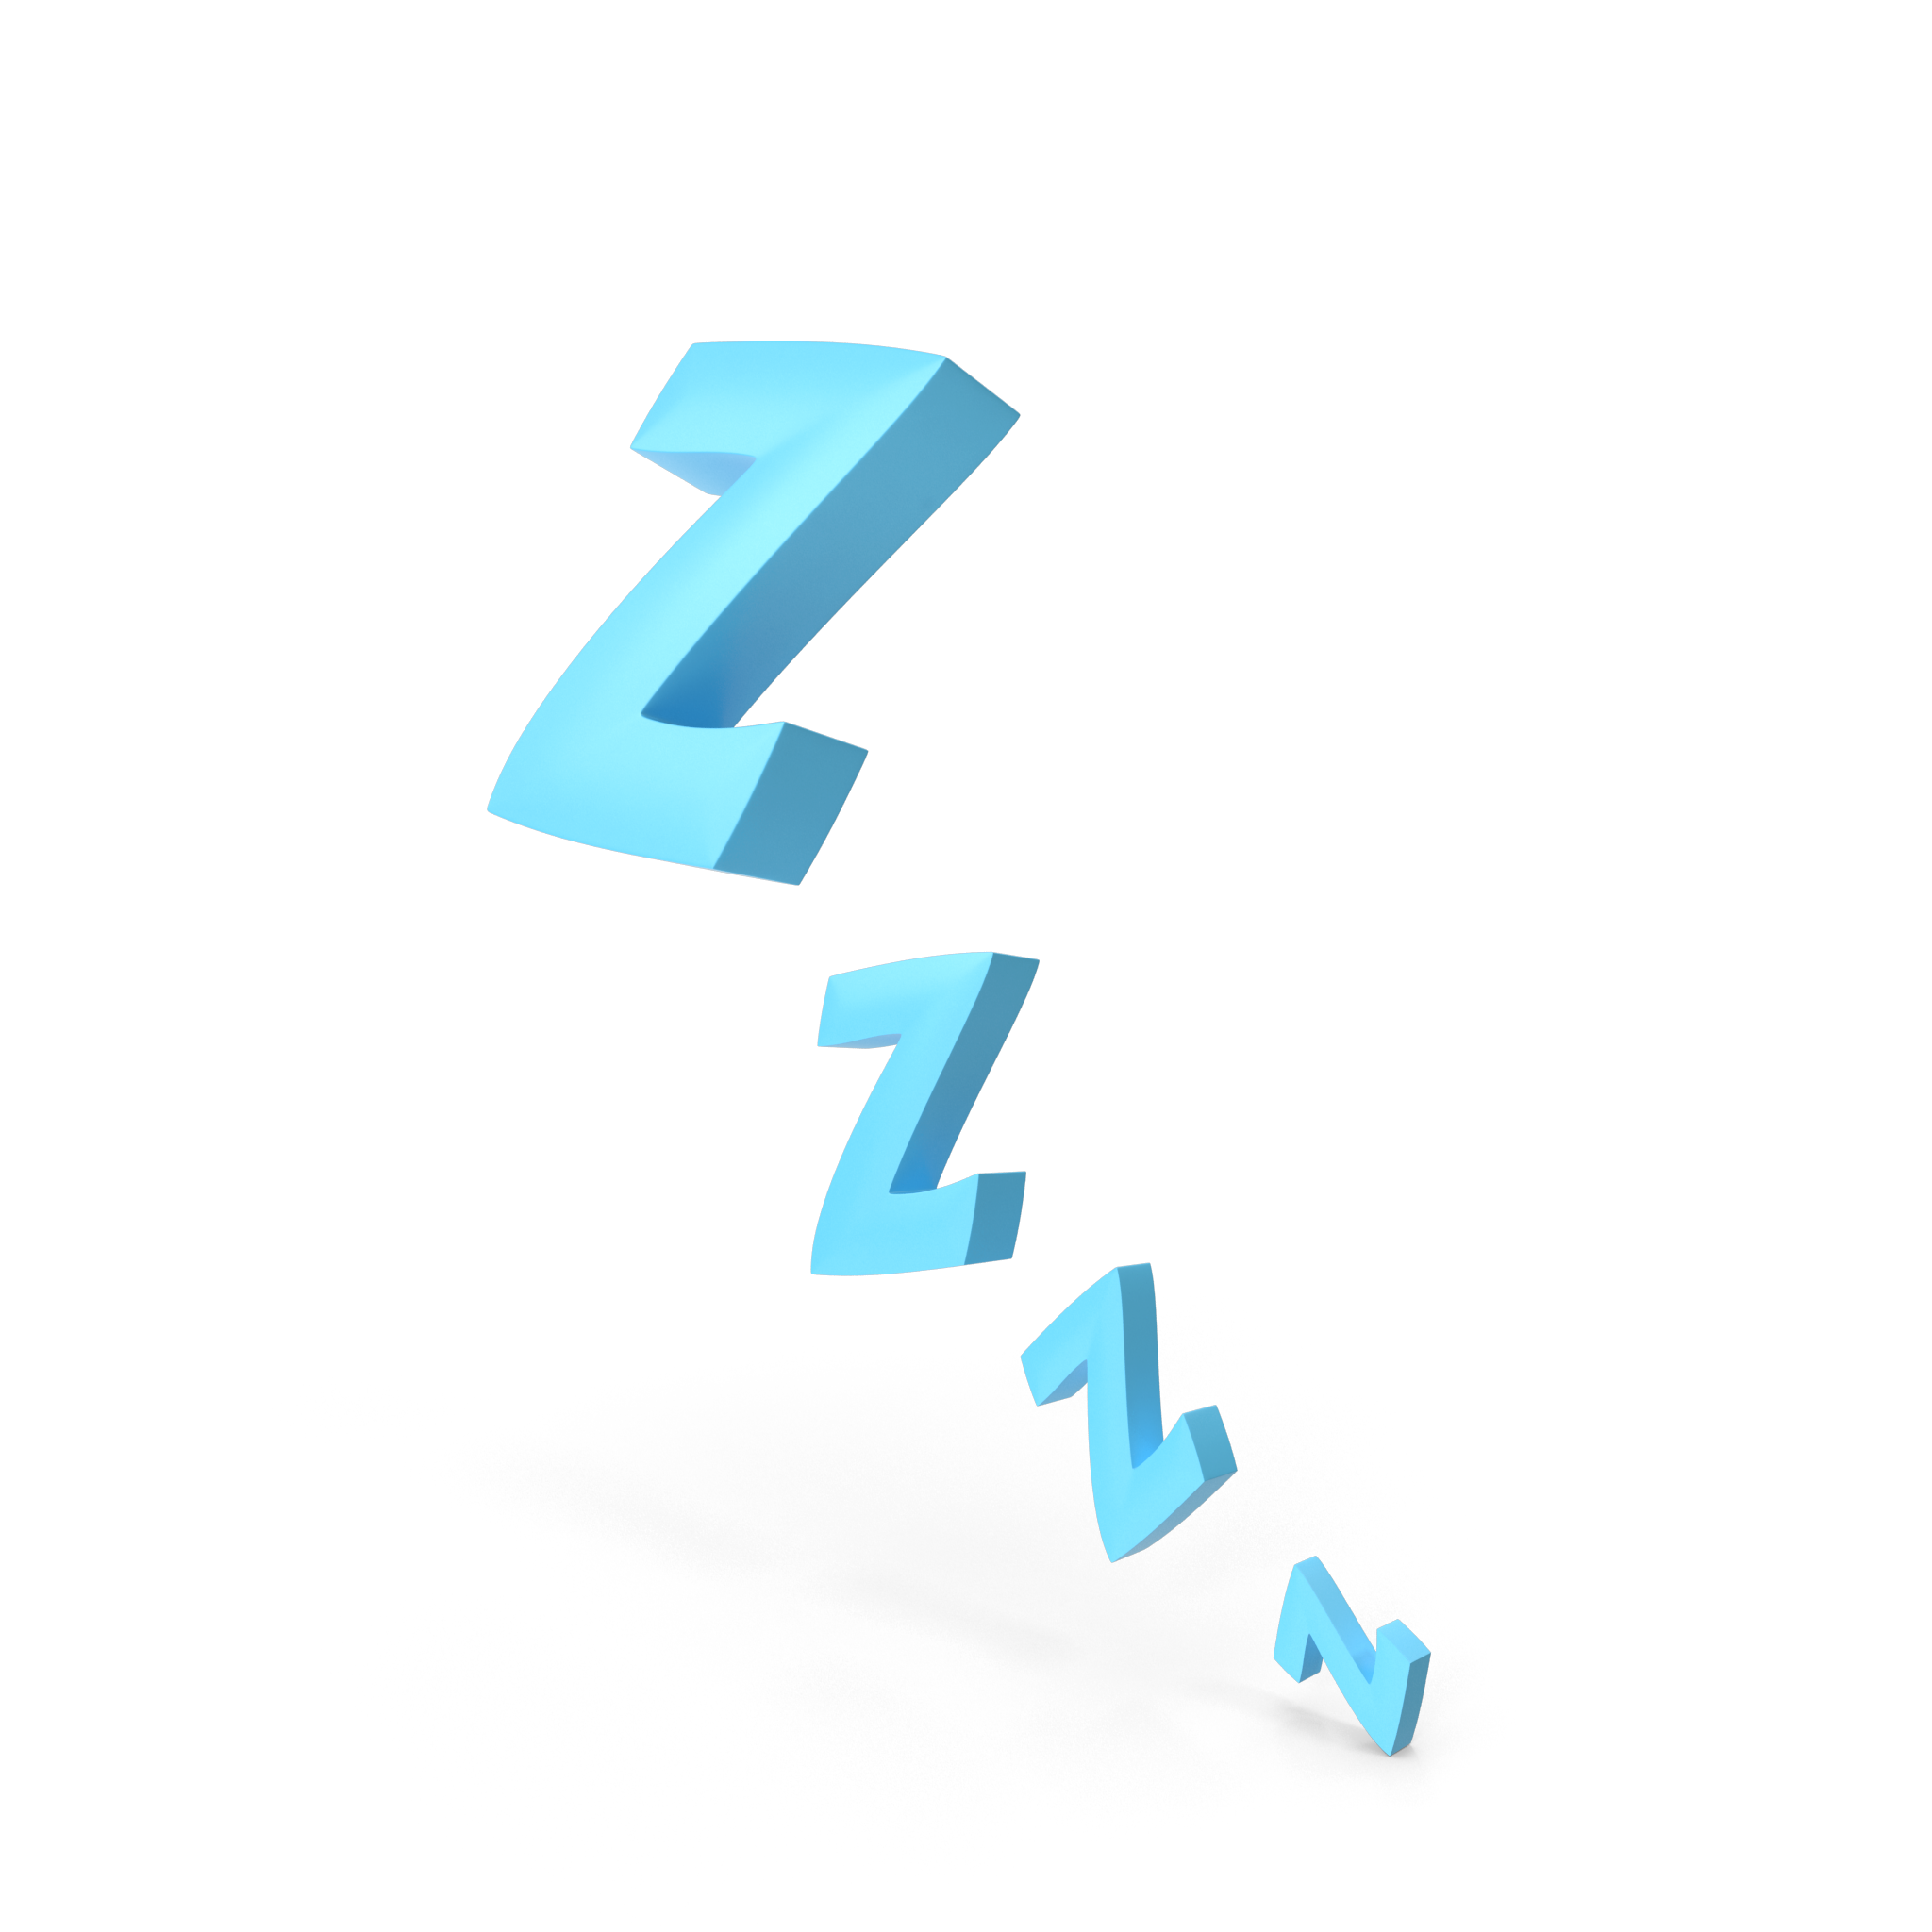 Comic-Sleeping-Zzzz.H03.2k-1